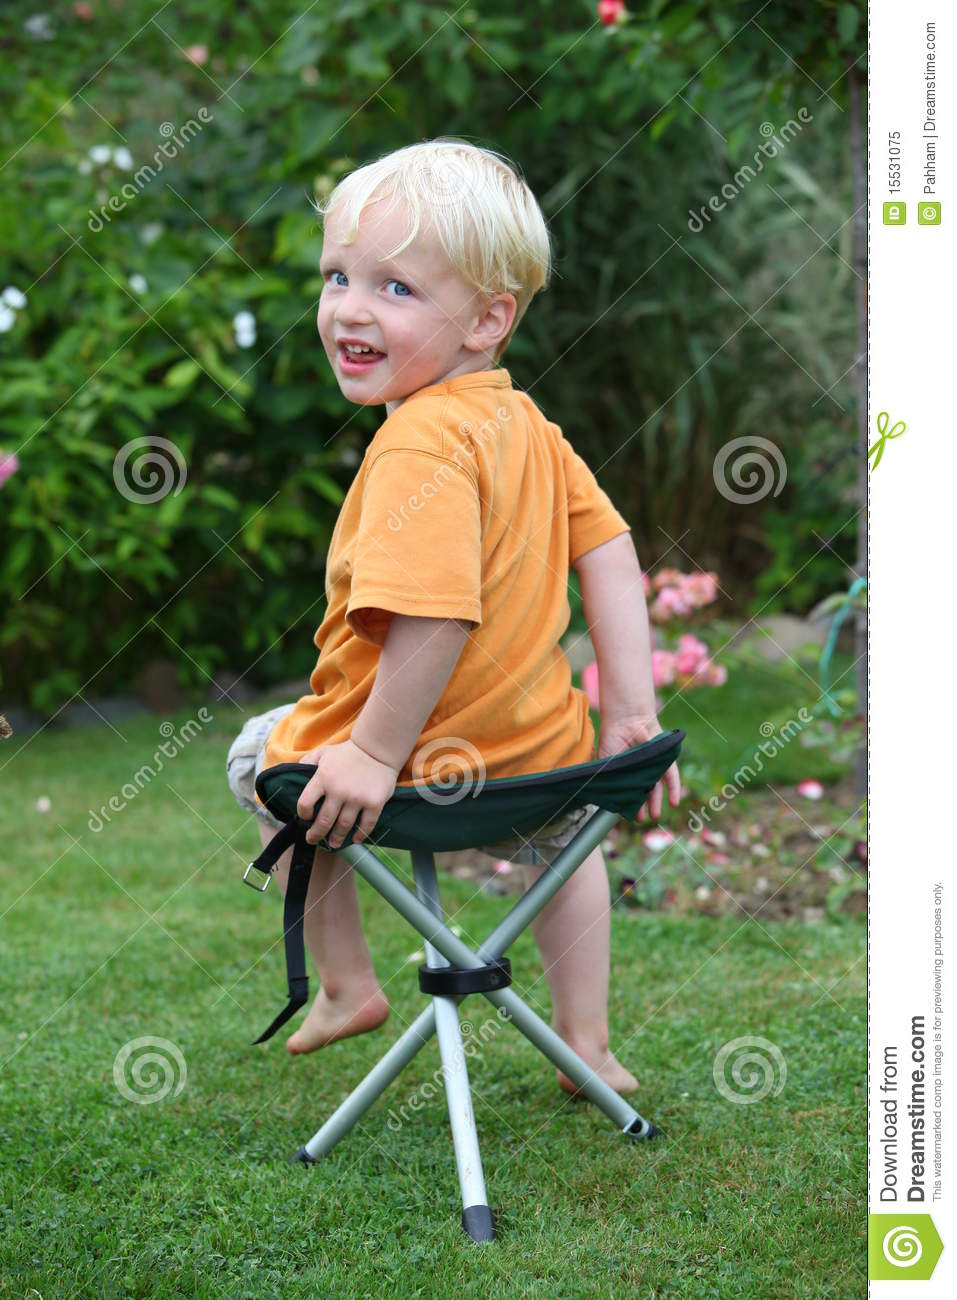 Toddler on a folding chair royalty free stock photo for Toddler sitting chair